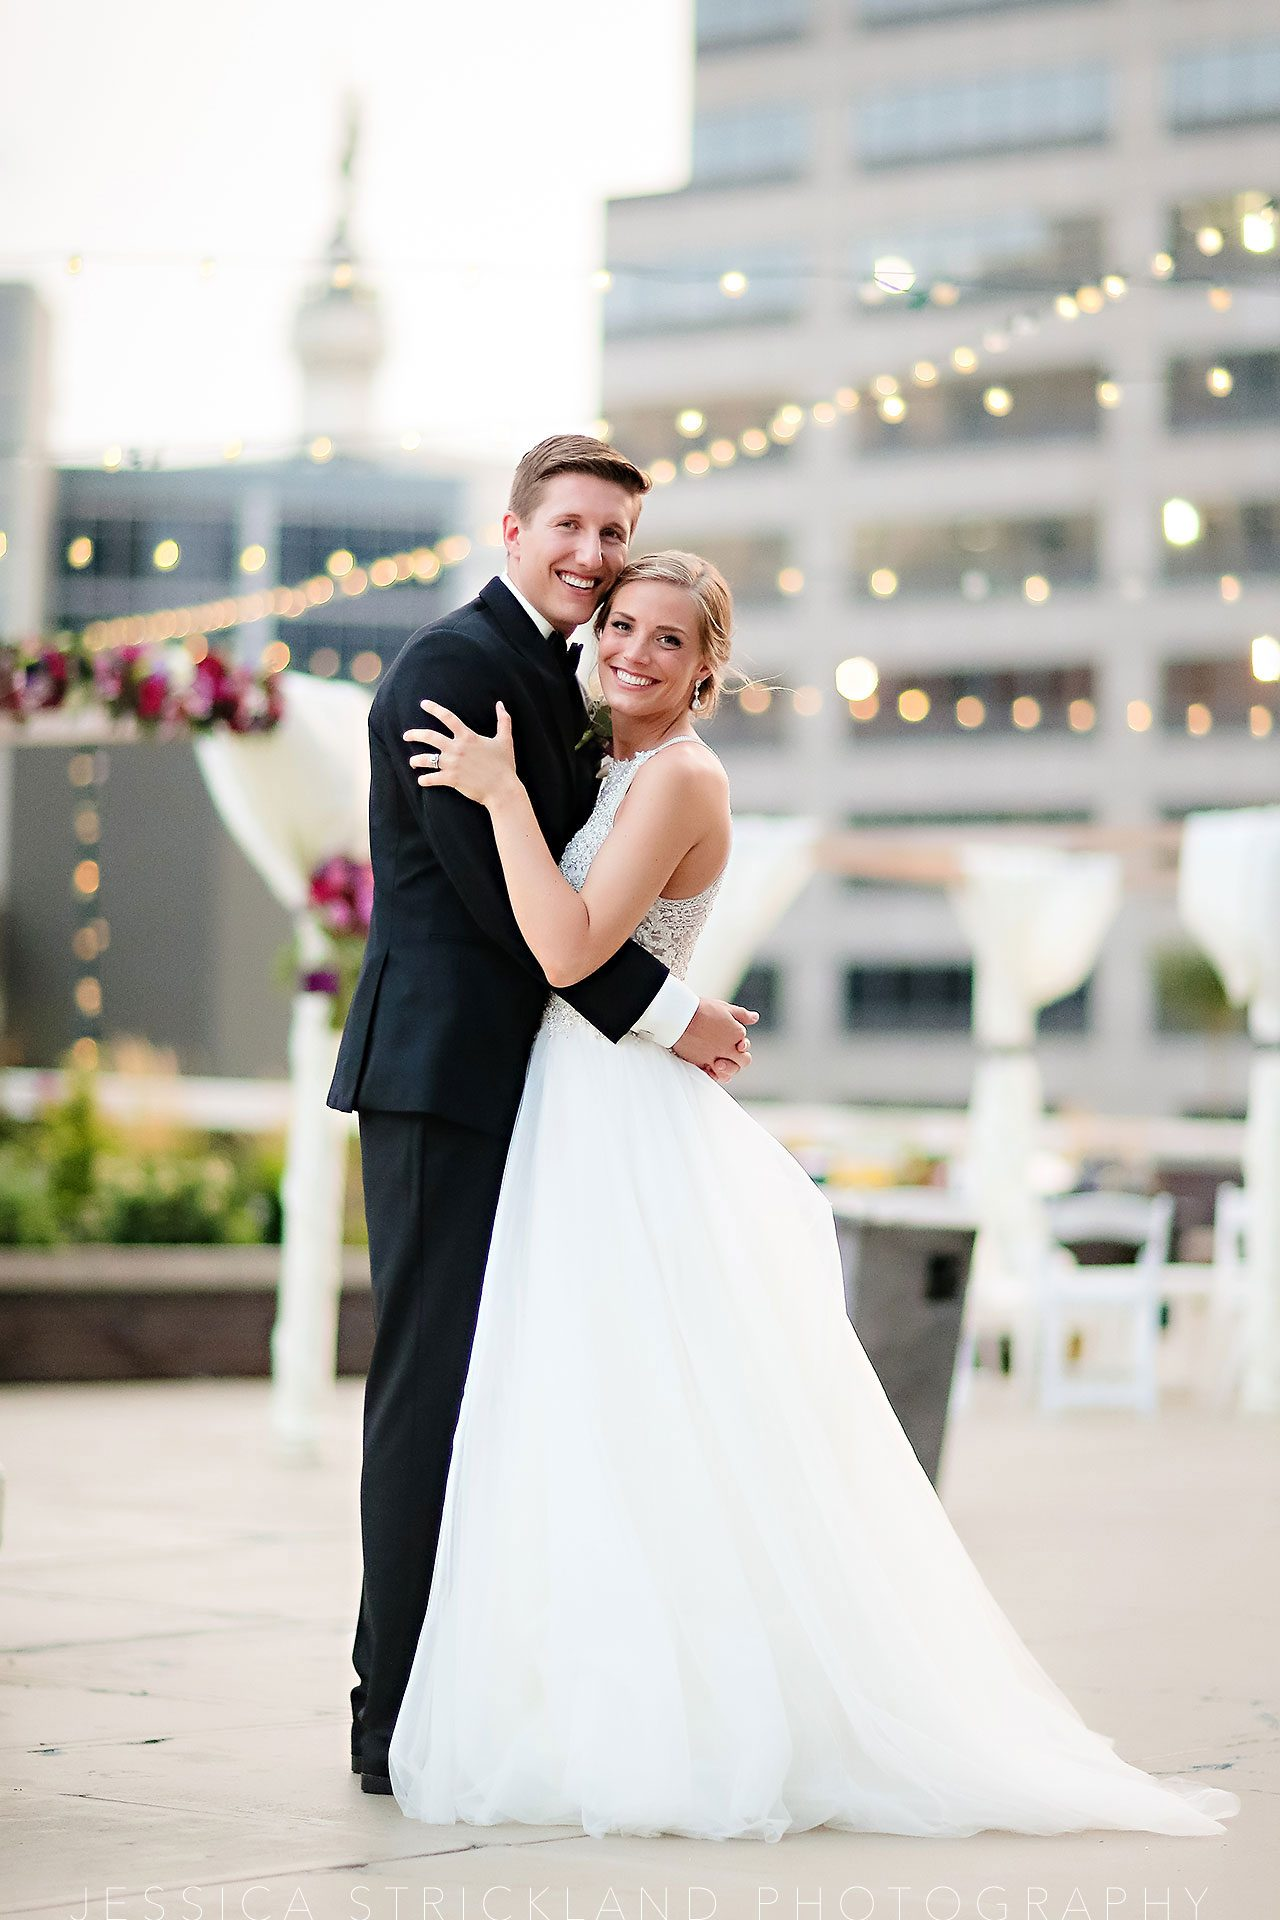 Serra Alex Regions Tower Indianapolis Wedding 325 watermarked